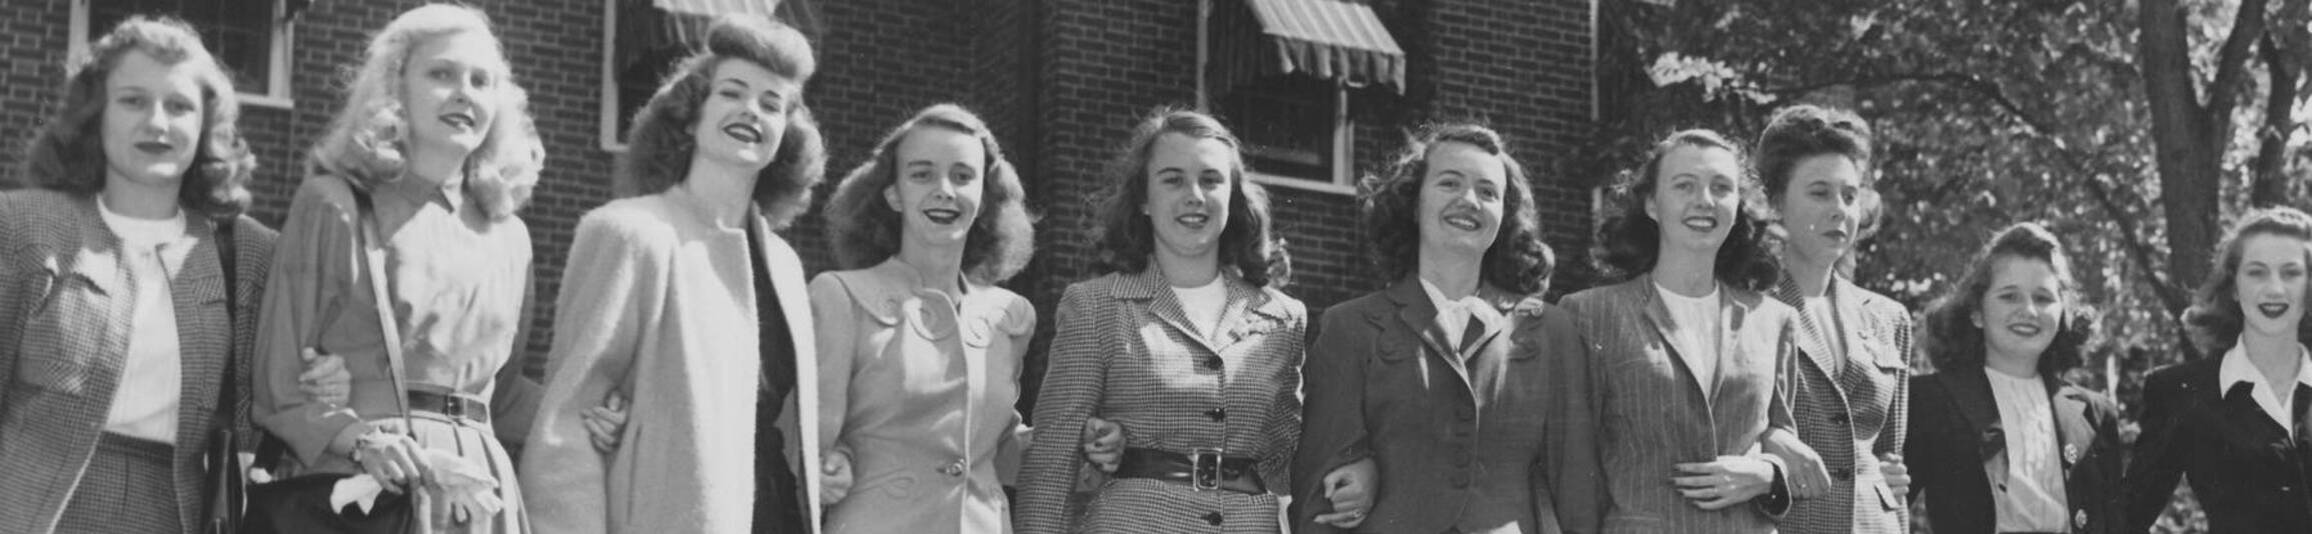 Ursuline college old photo of students in the 1940s3